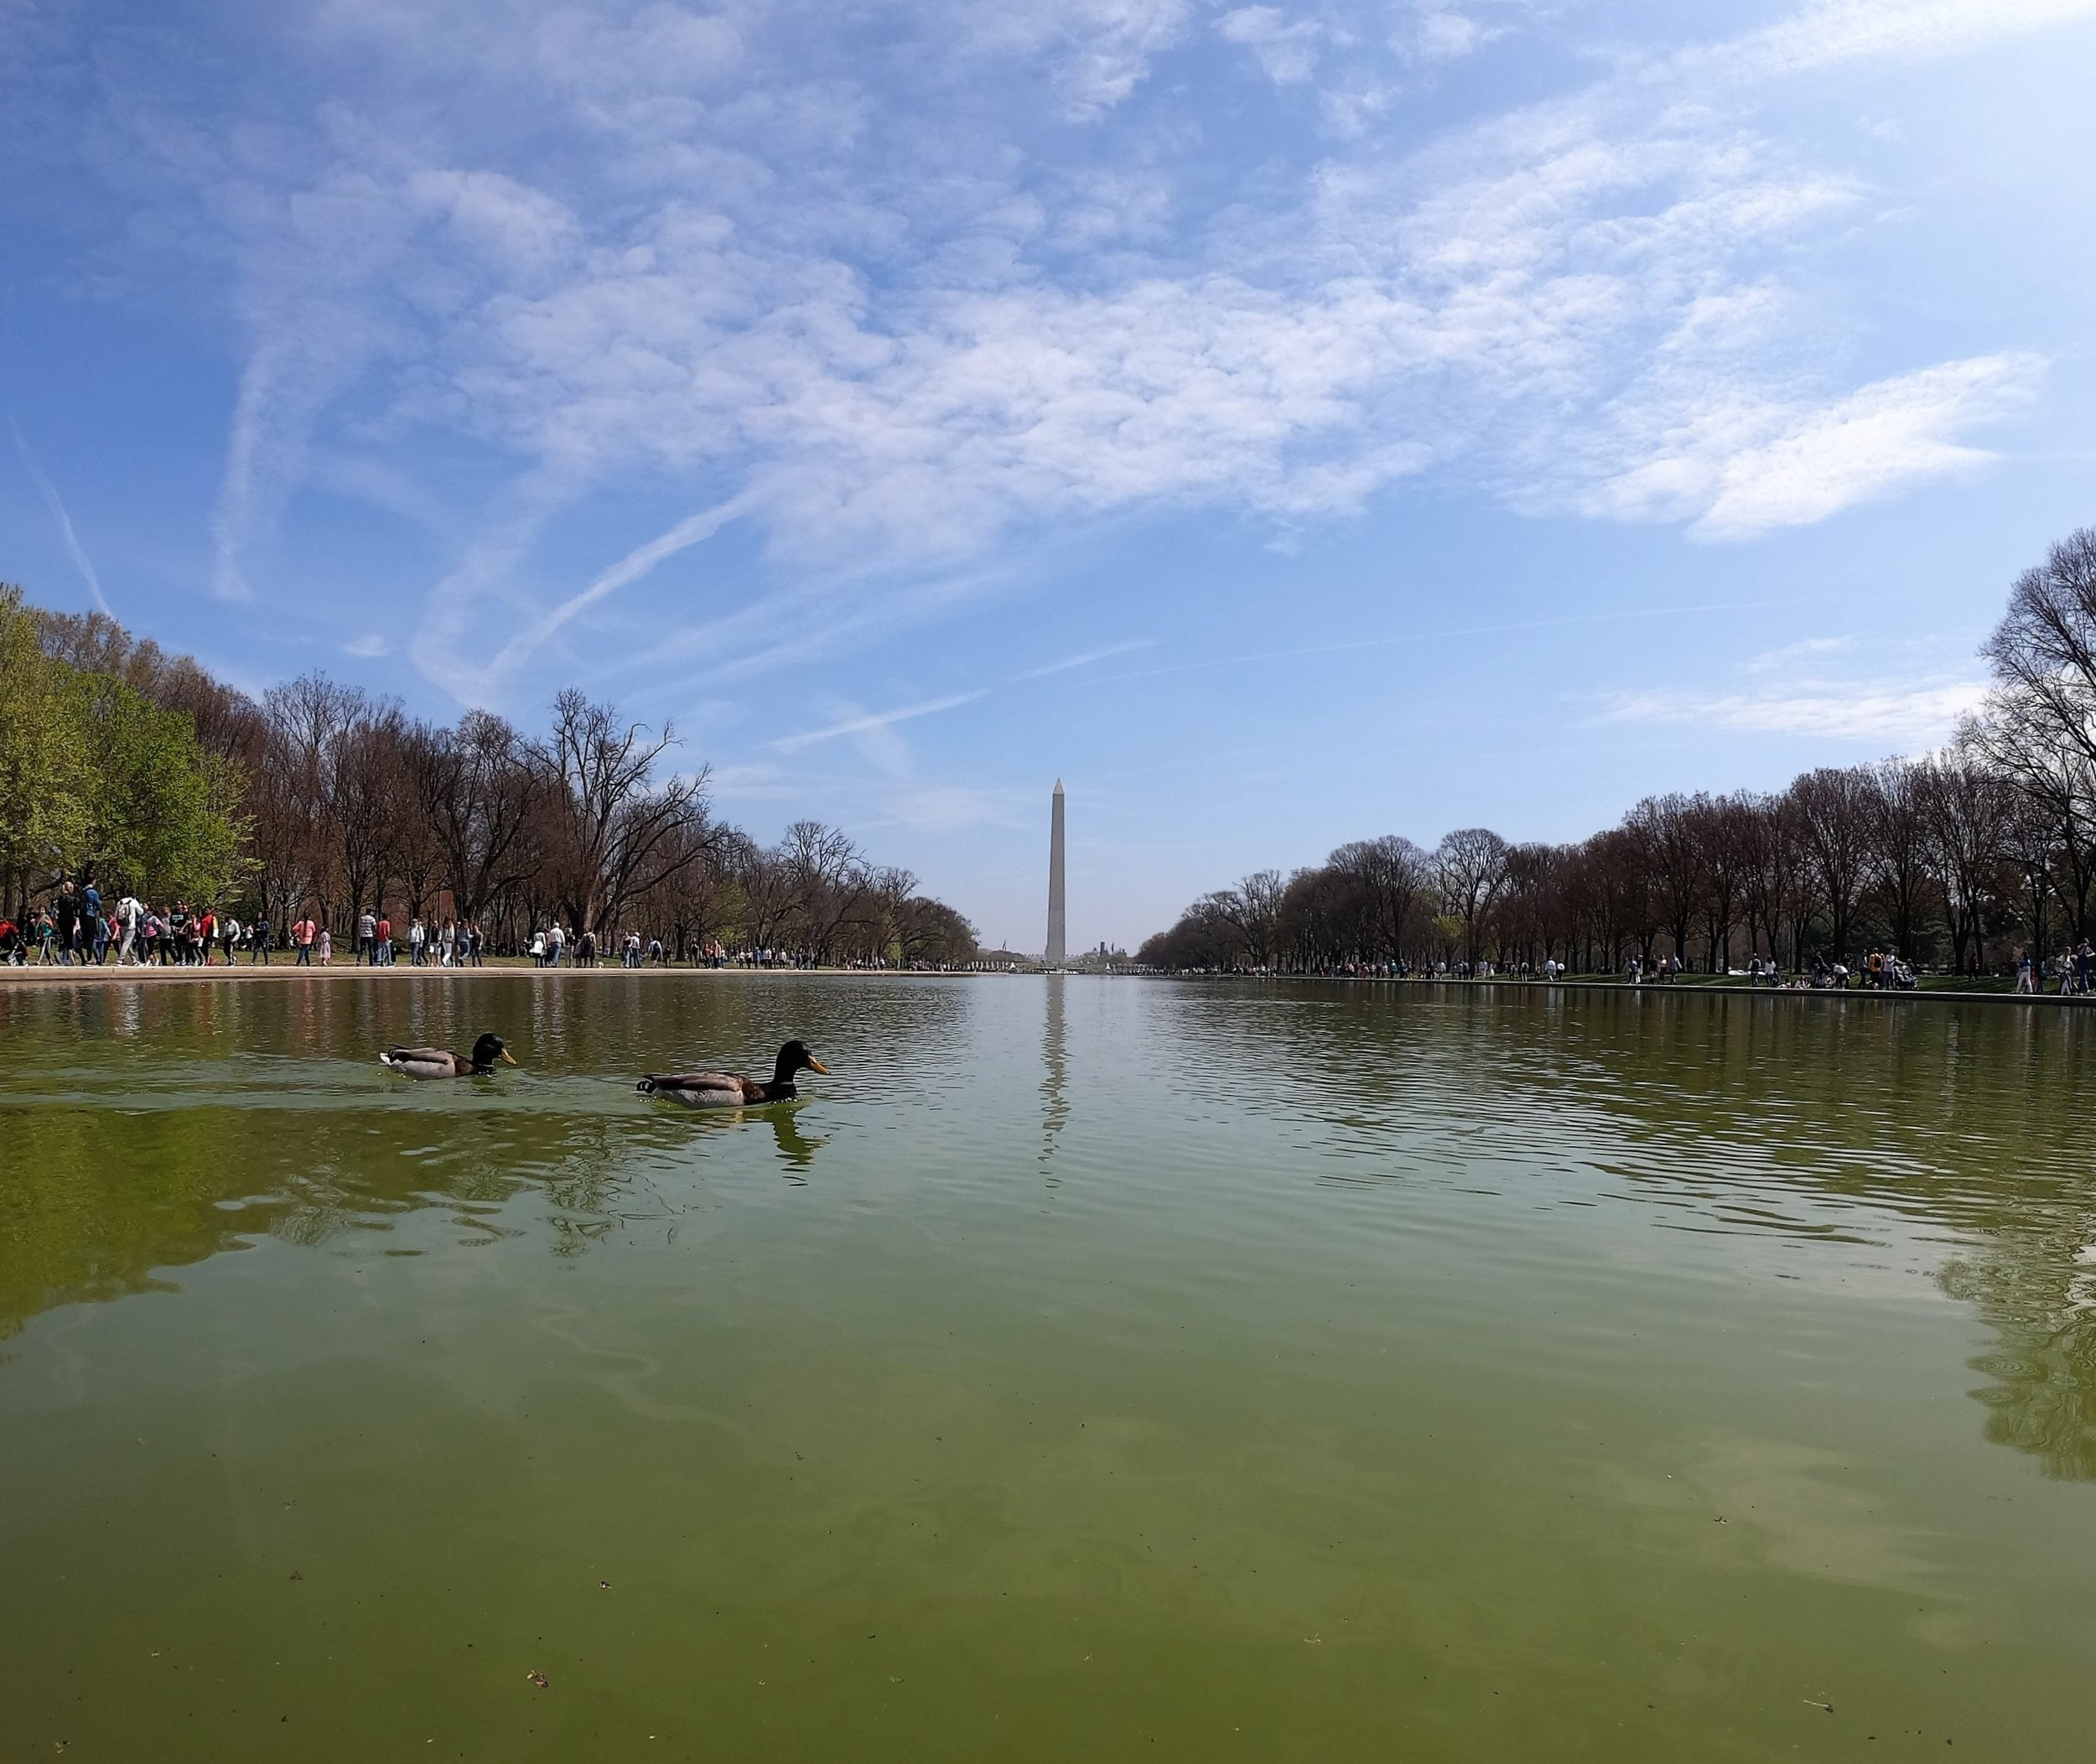 Washington Monument from Lincoln Memorial side of Reflecting Pool